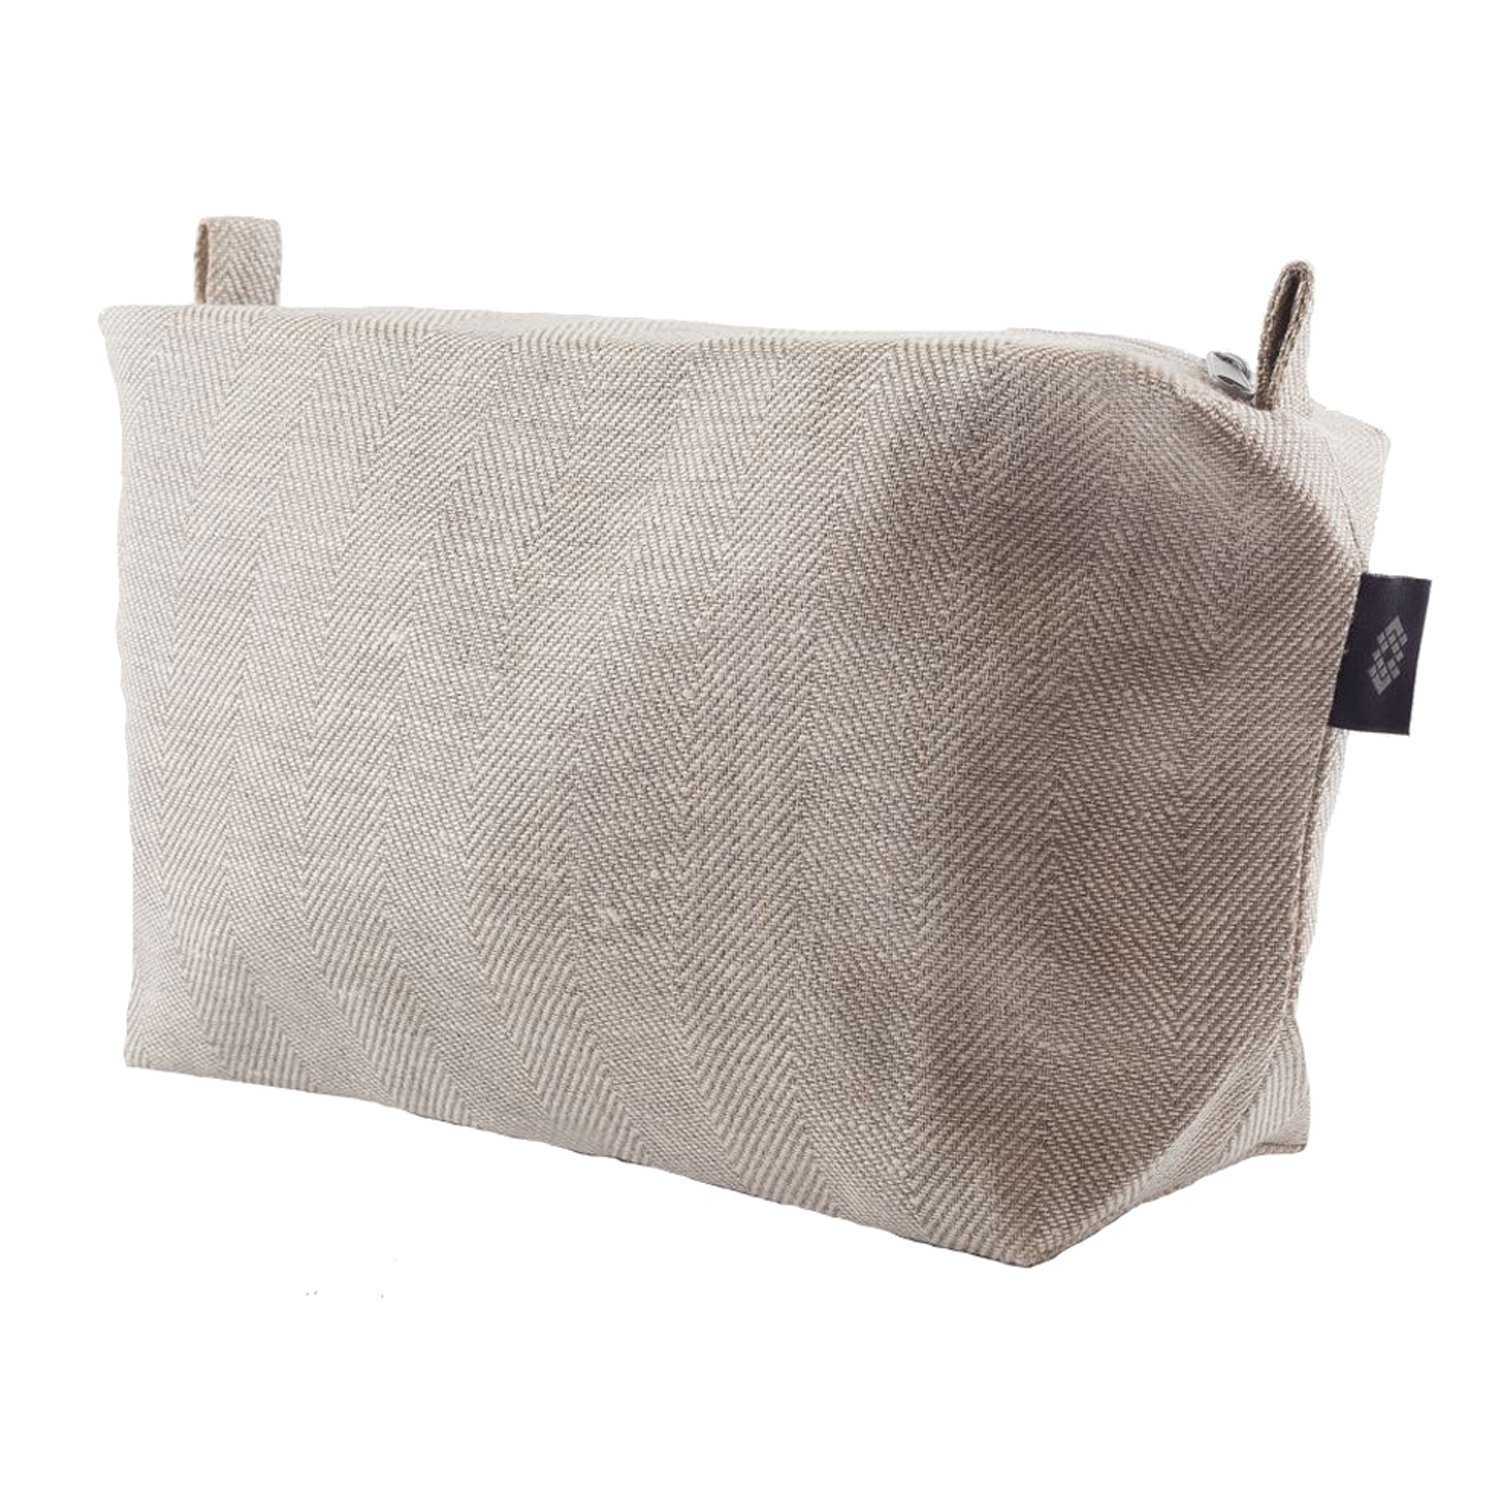 Large Canvas Toiletry Bag White - 100% Linen Travel Sack, ThingStore